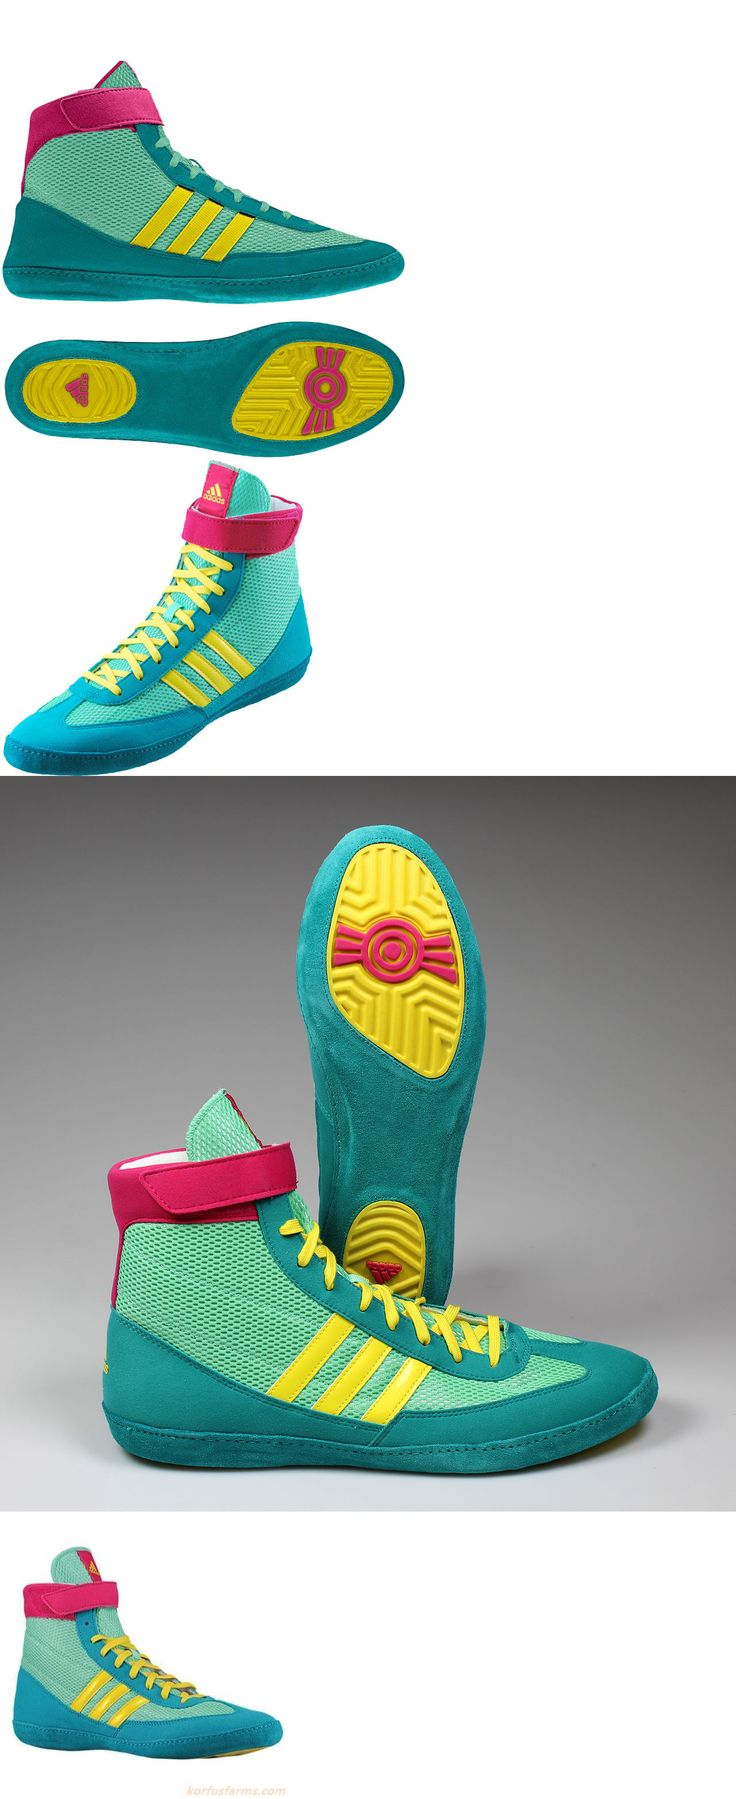 Clothing 79796: Adidas Wrestling Shoes (Boots) Combat Speed 4 Ringerschuhe Cyan Lemon Mma Boxing -> BUY IT NOW ONLY: $74.99 on eBay!